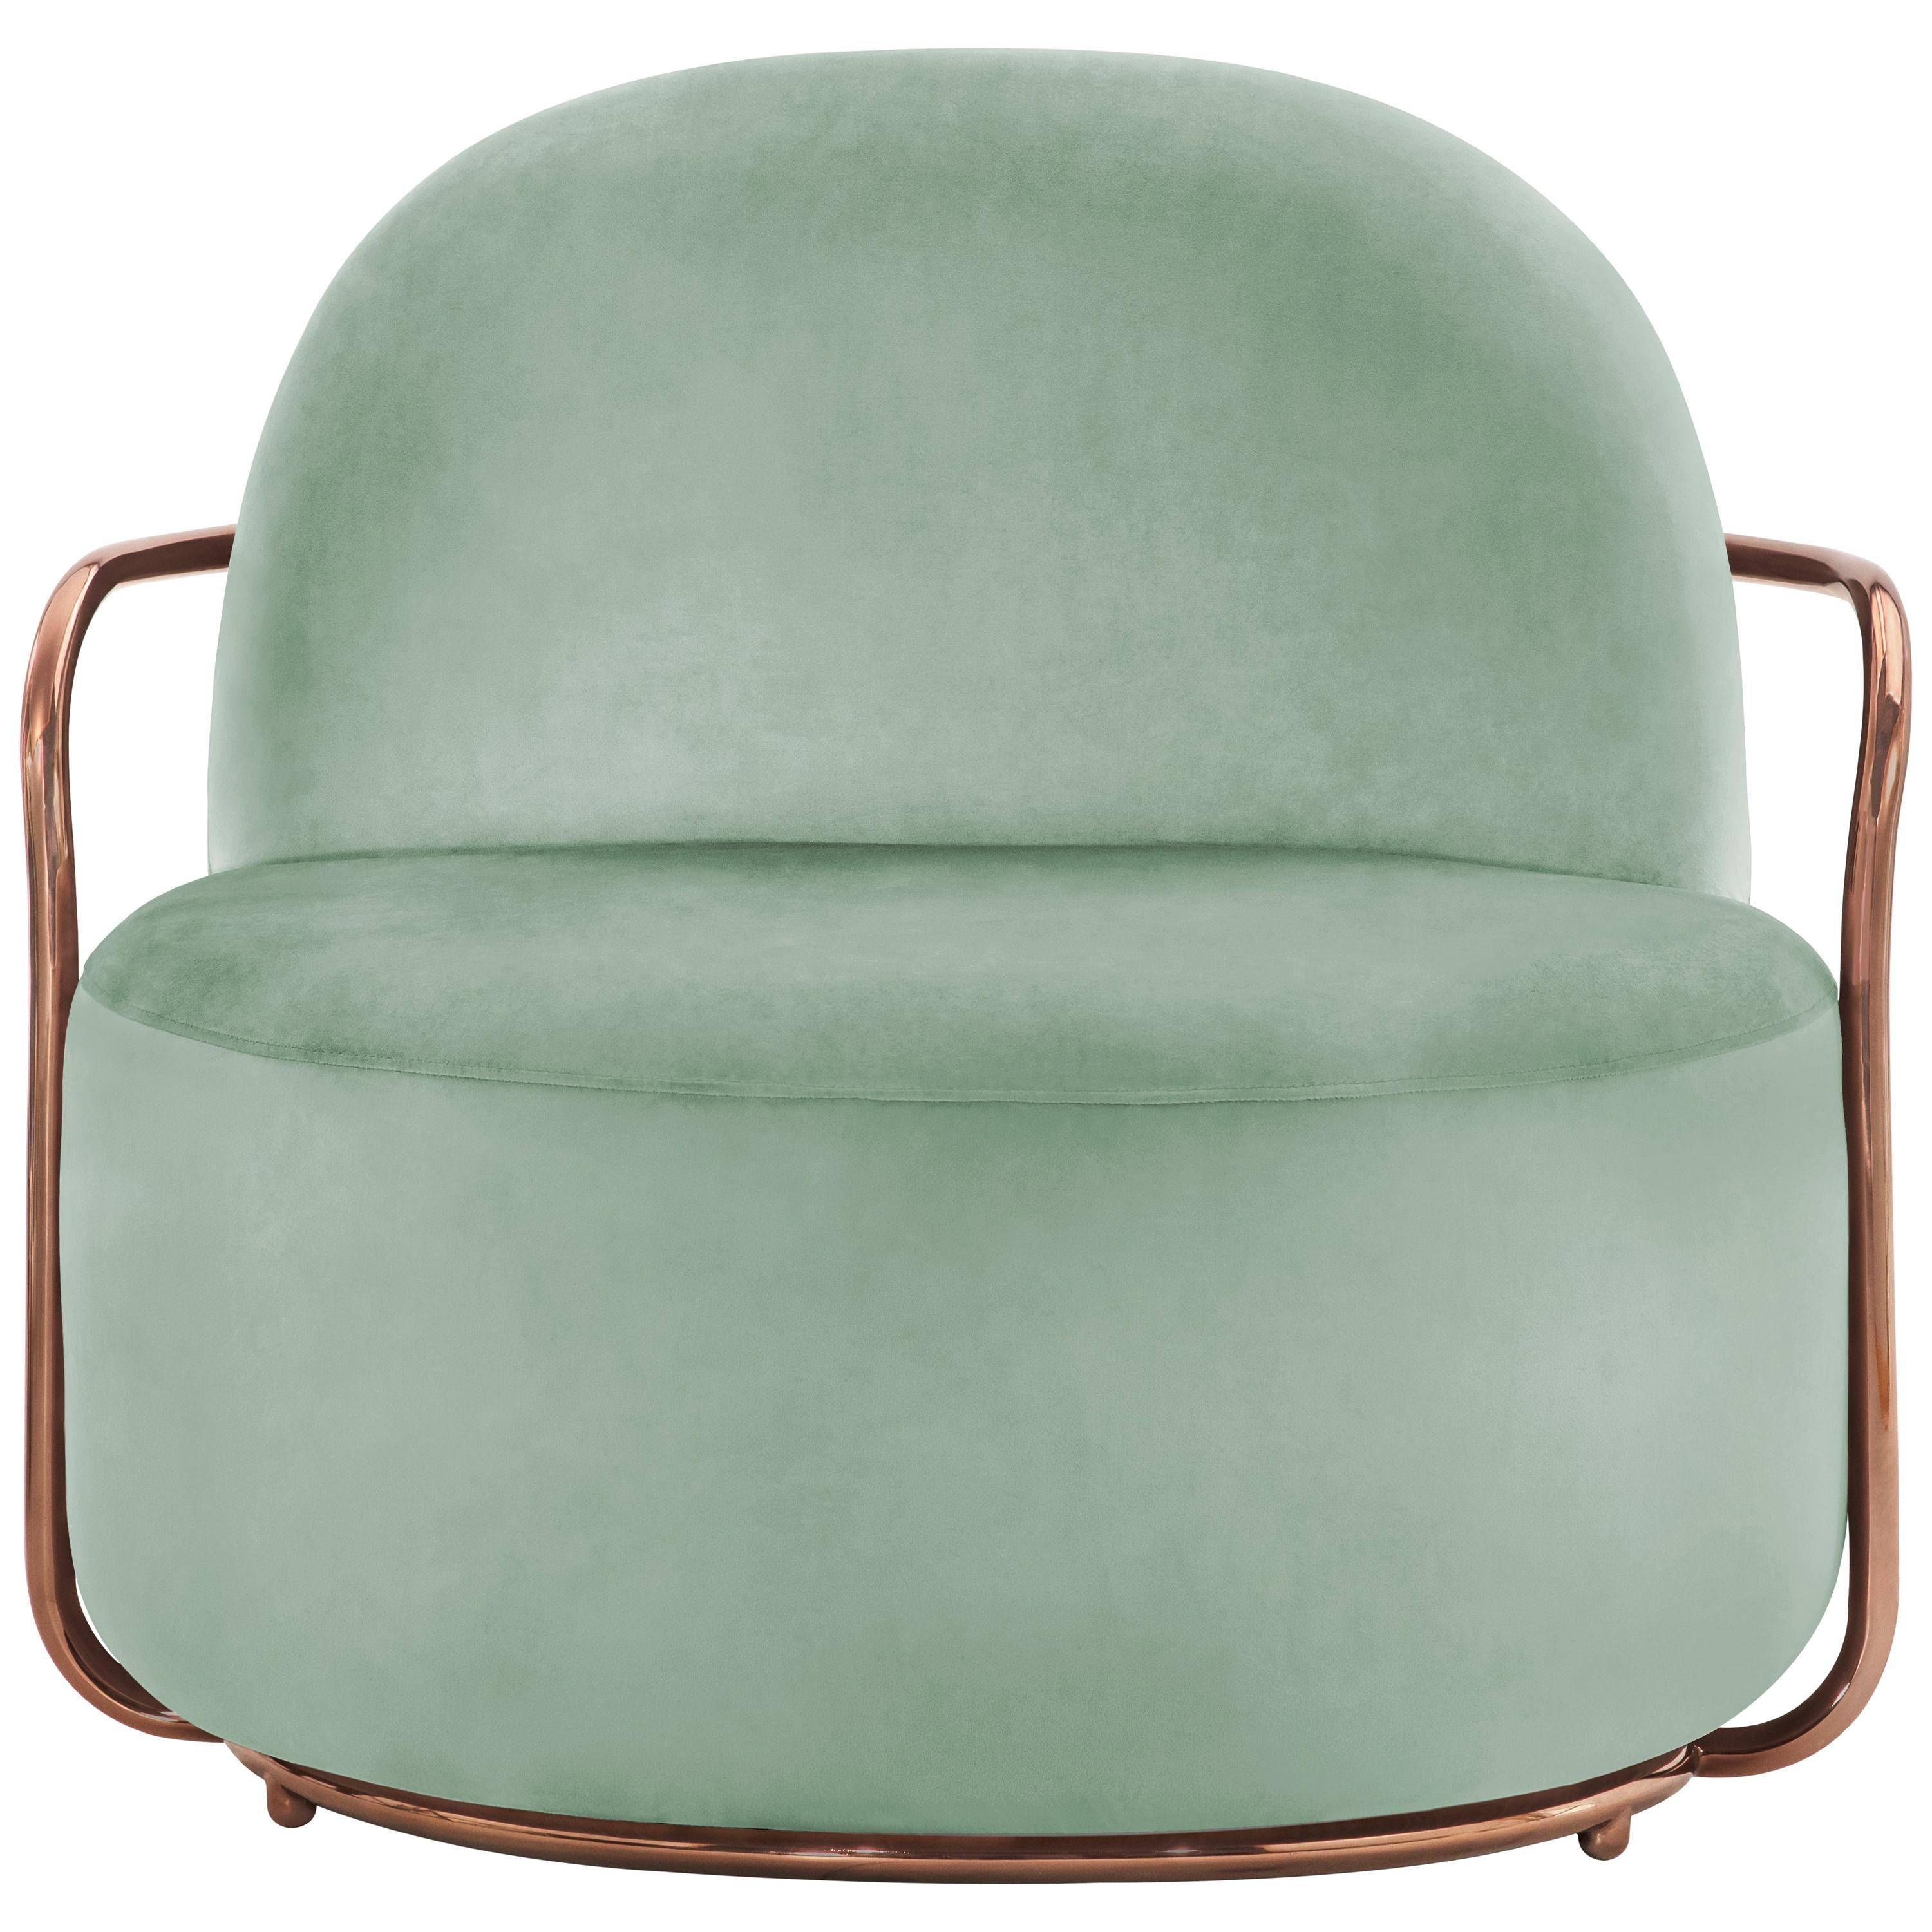 Orion Lounge Chair with Mint Green Velvet and Rose Gold Arms by Nika Zupanc